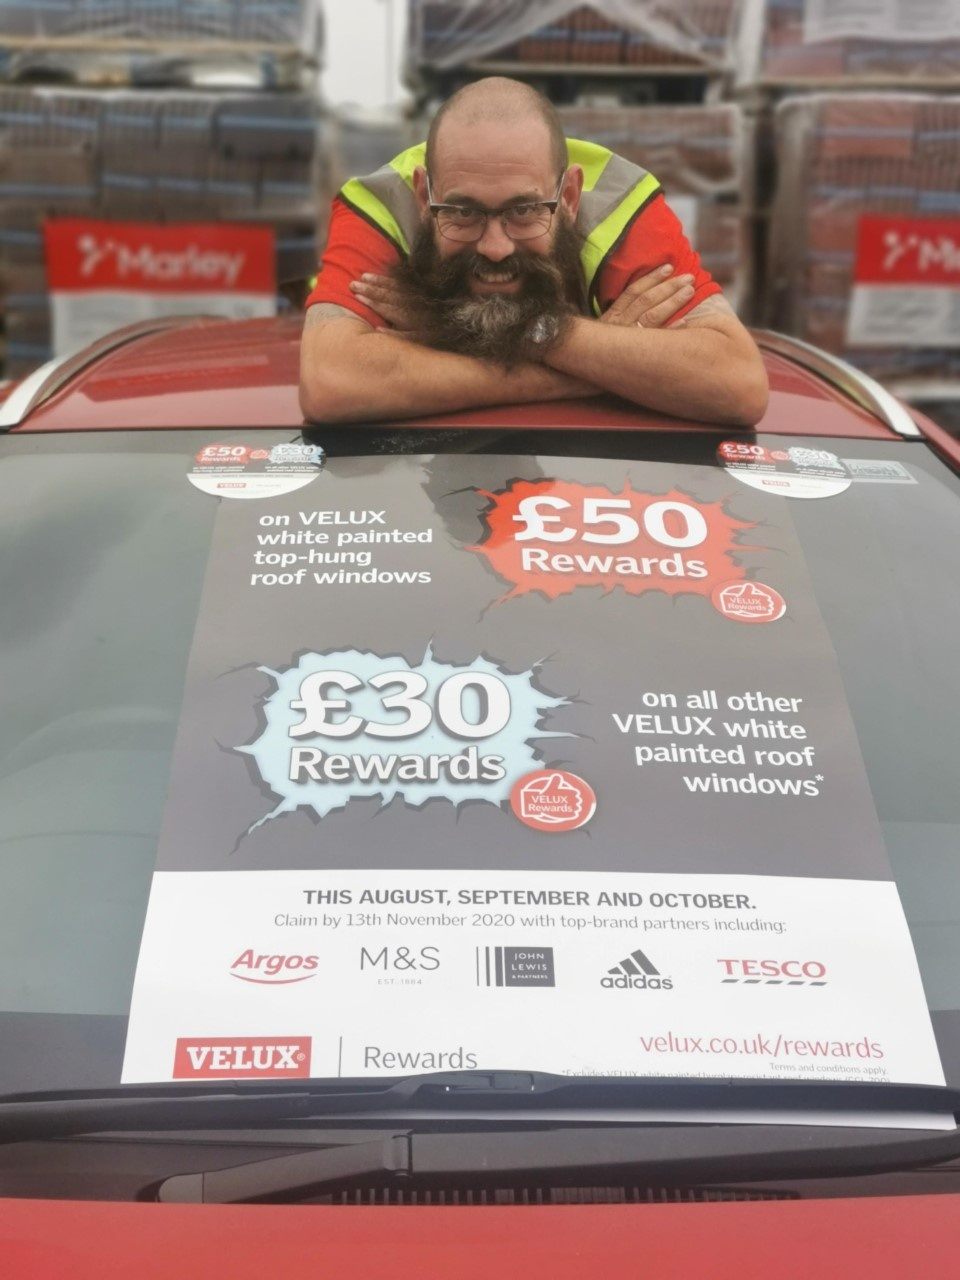 Paul Martin from Elliotts Christchurch and VELUX Rewards